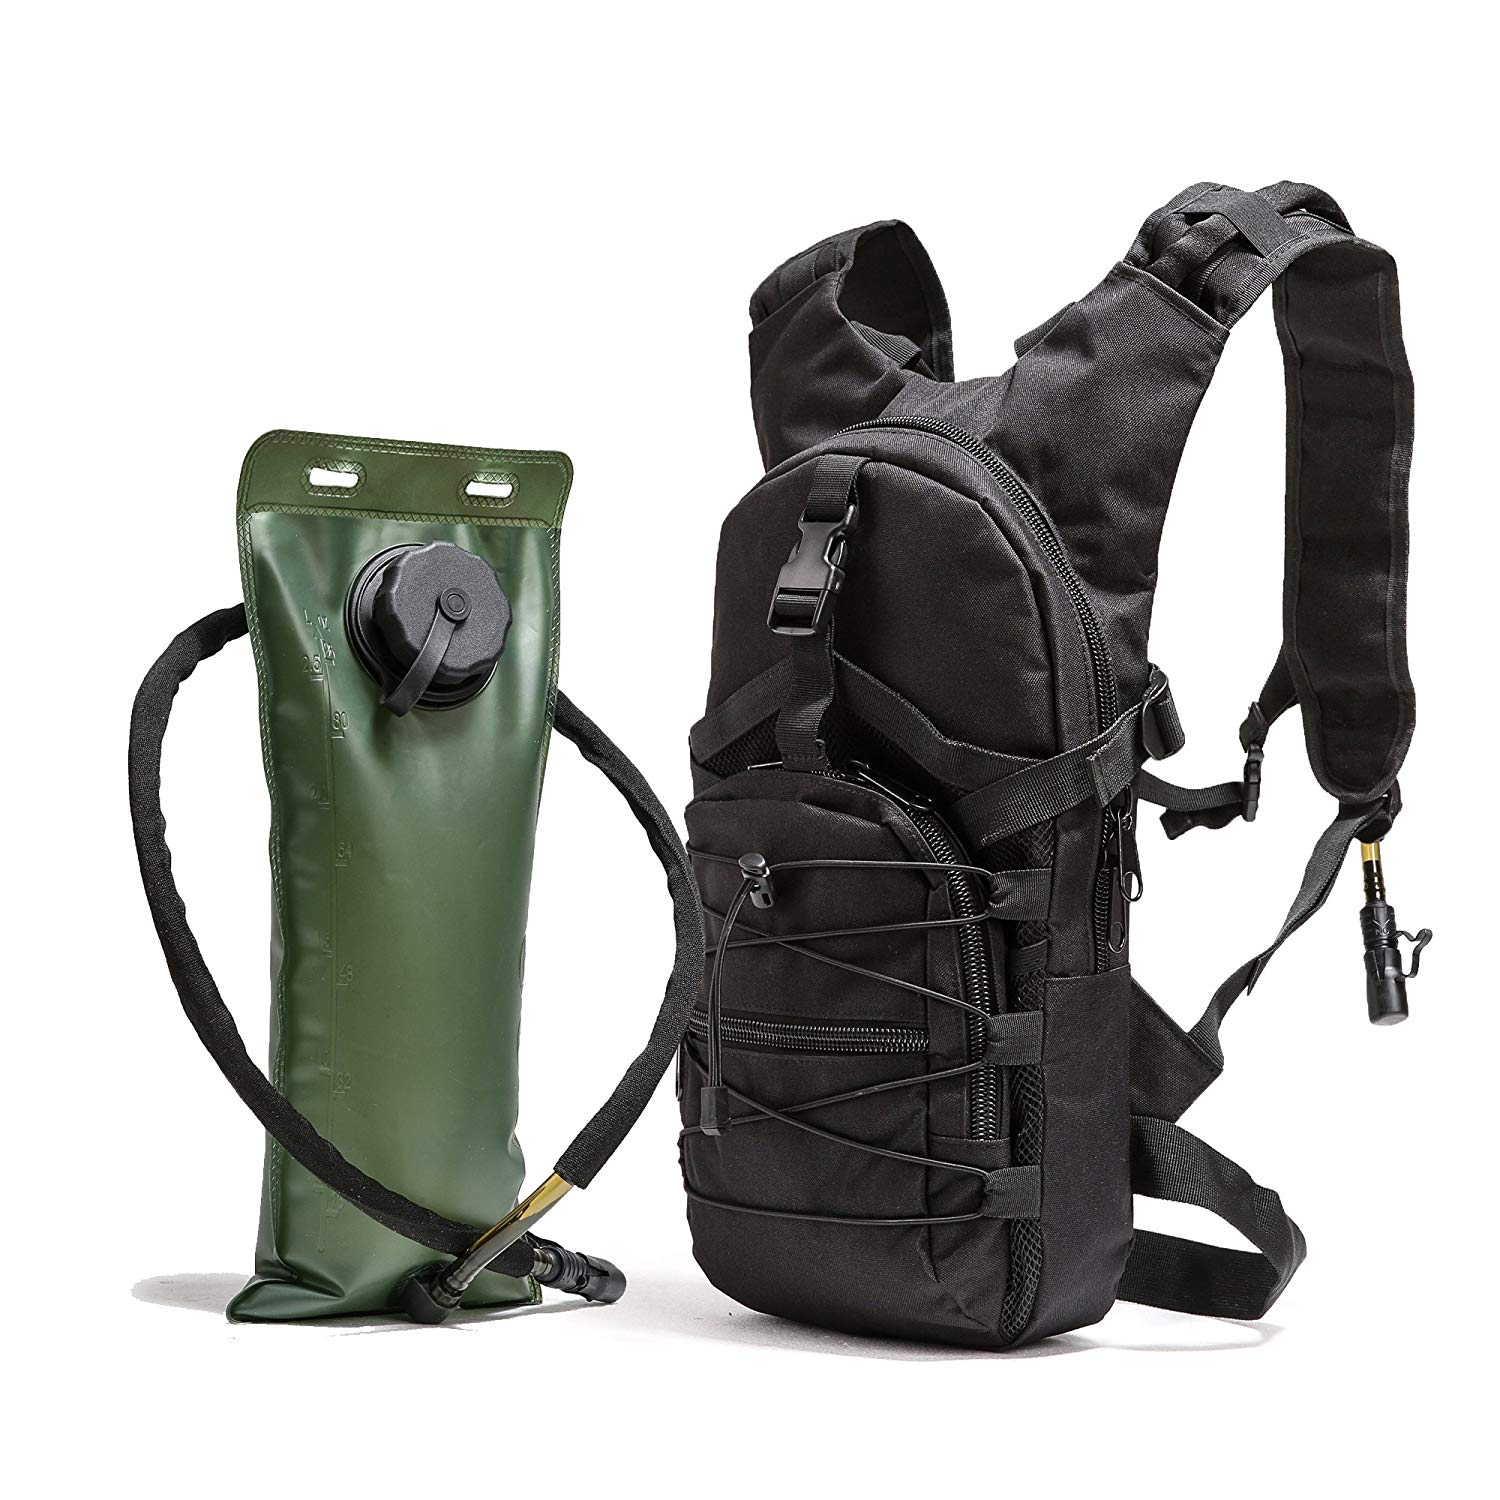 ba49c09fc1 Get Quotations · FIGROL Tactical Hydration Pack 3L Bladder Water Bag for  Outdoor Running Cycling Hiking Climbing(Black